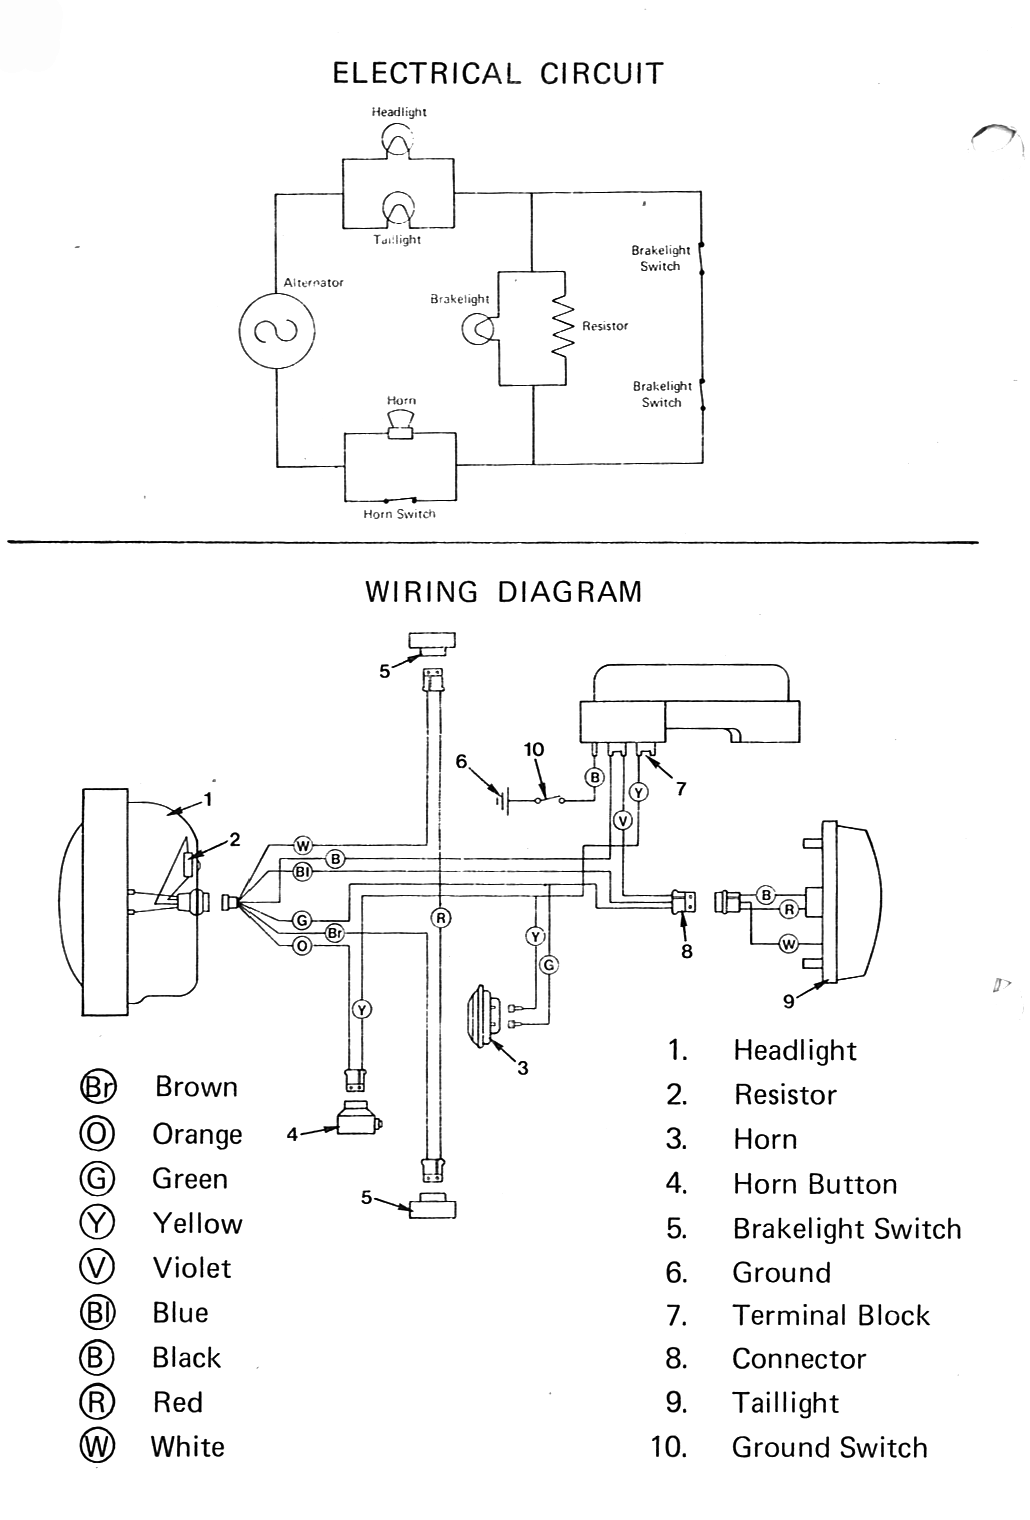 Garelli Wiring Diagram - Fe Wiring Diagrams on garelli wiring diagram, dodge wiring diagram, gy6 cdi wiring diagram, ignition coil wiring diagram, beta wiring diagram, ajs wiring diagram, asus wiring diagram, norton wiring diagram, kawasaki wiring diagram, bajaj wiring diagram, kasea wiring diagram, tomos wiring diagram, cf moto wiring diagram, honda wiring diagram, benq wiring diagram, generic wiring diagram, kreidler wiring diagram, husaberg wiring diagram, smc wiring diagram, evinrude wiring diagram,